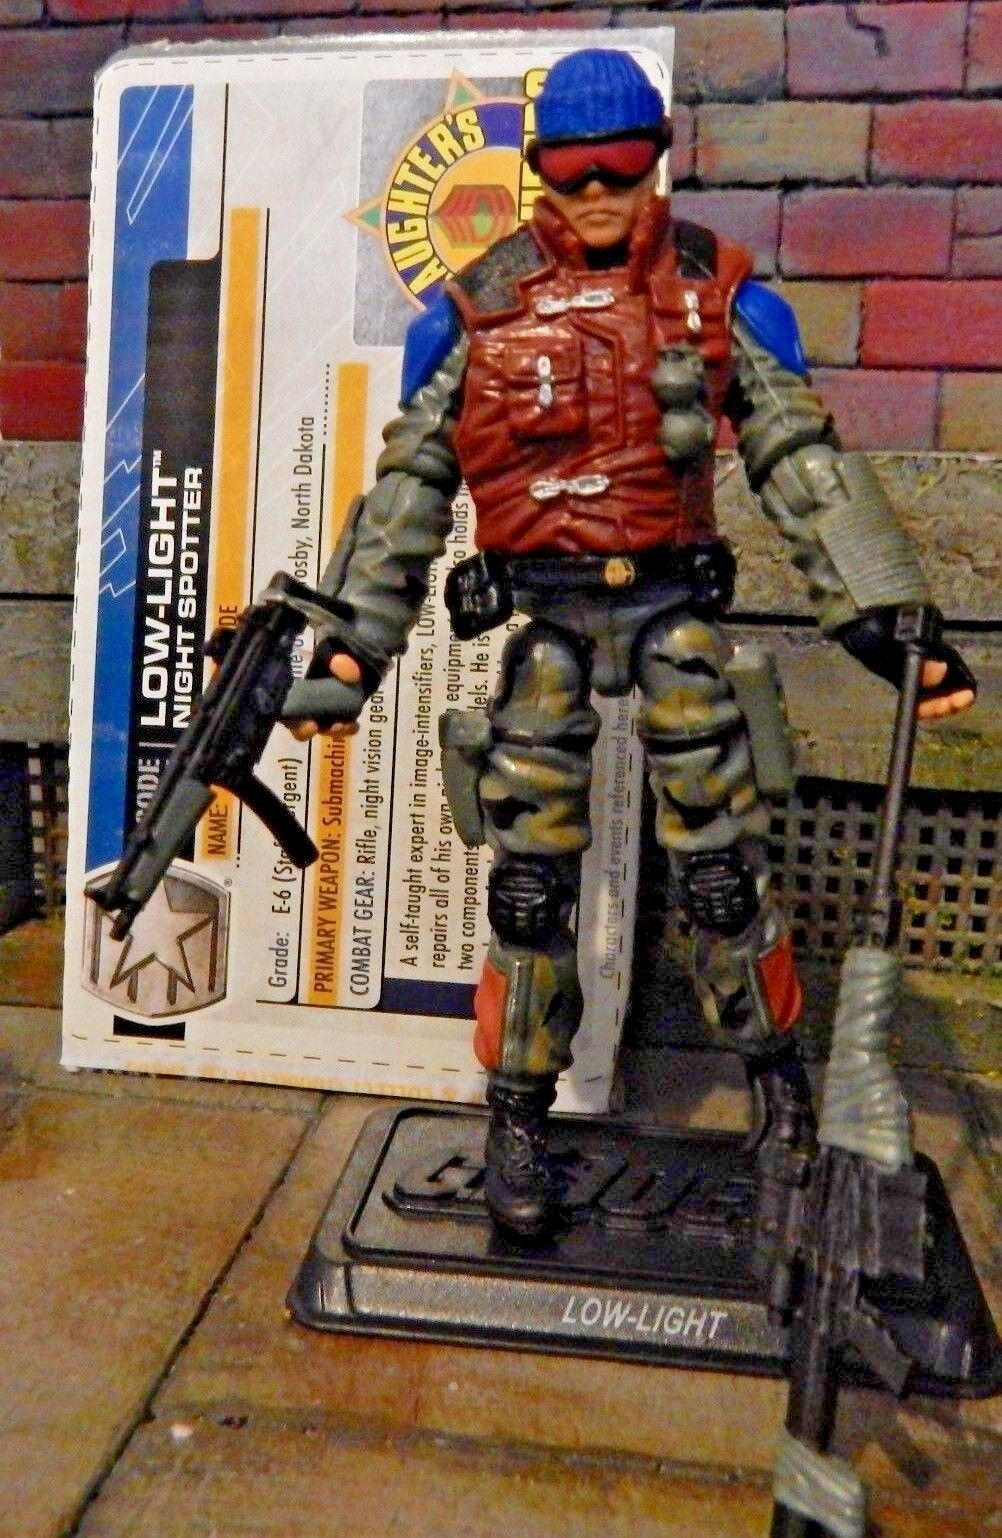 GI JOE  2011 LOW LIGHT SLAUGHTERS MAURADER   30TH  BBTS COMPLETE W  file card